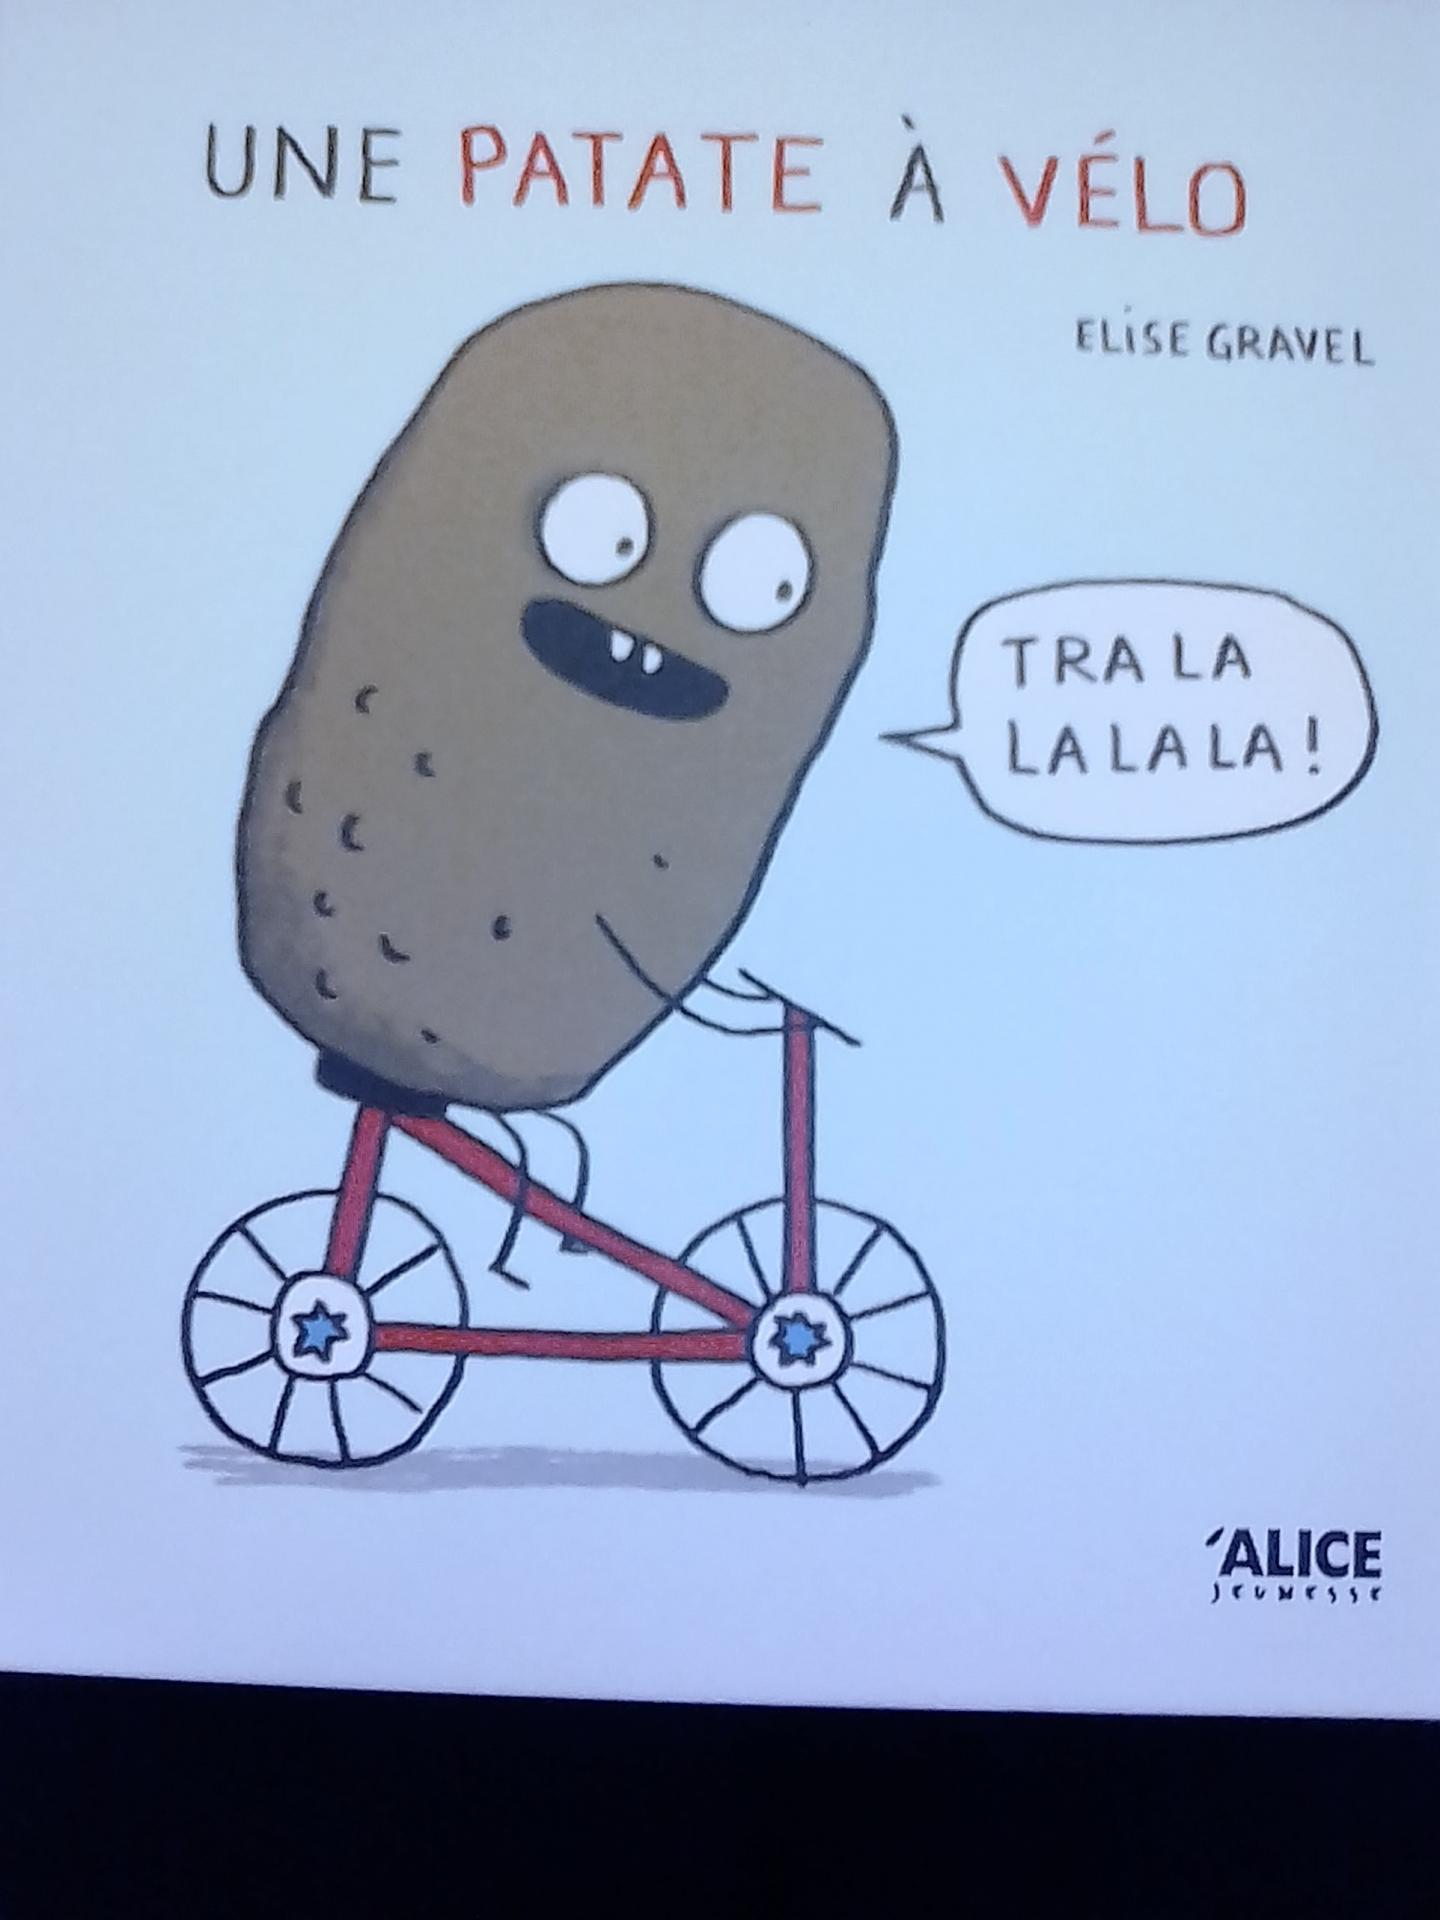 Patate a velo 2